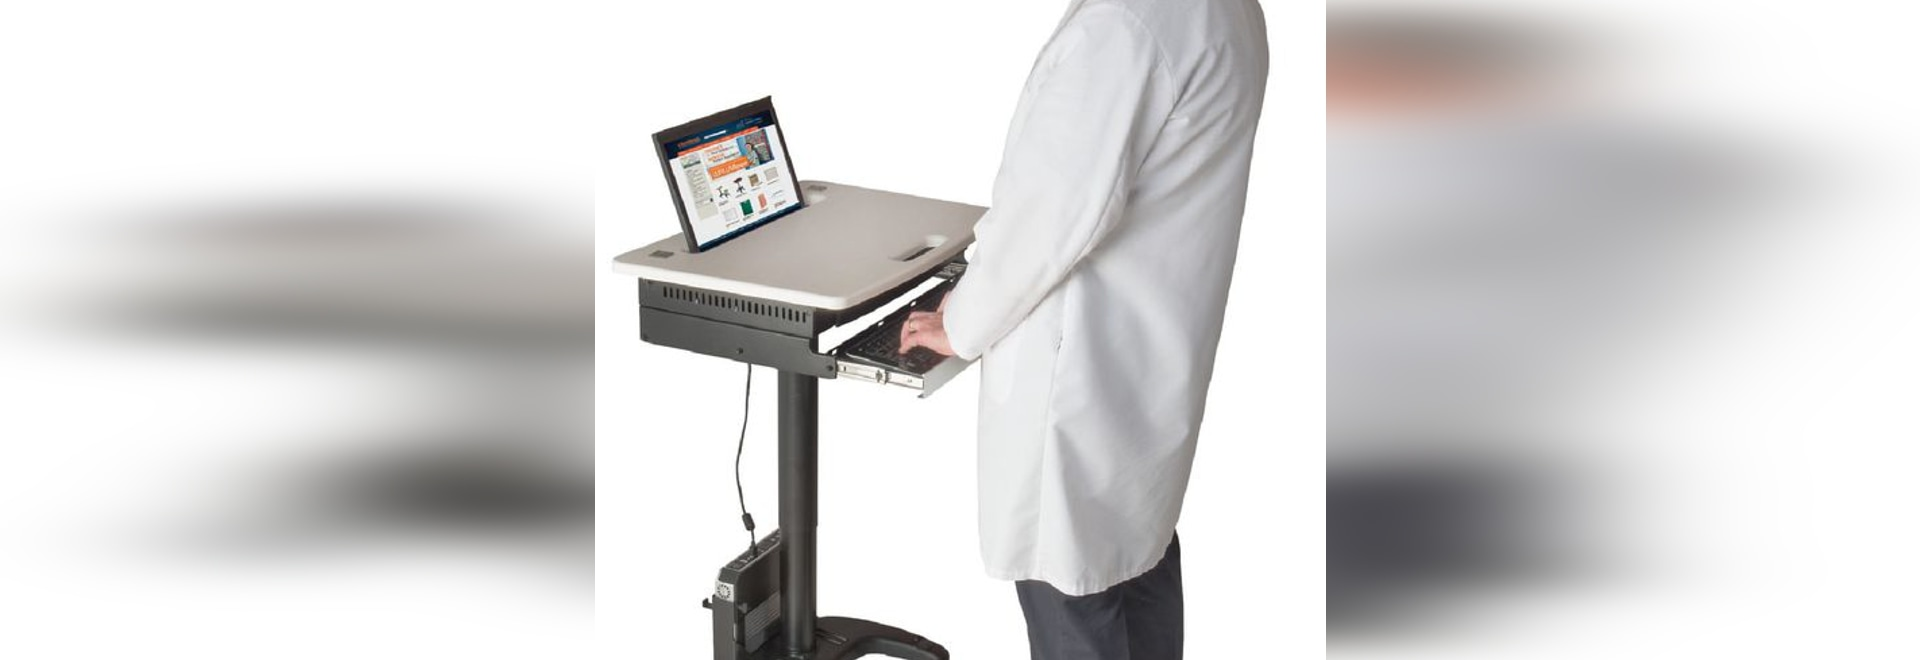 NEW: height-adjustable computer cart by Carstens